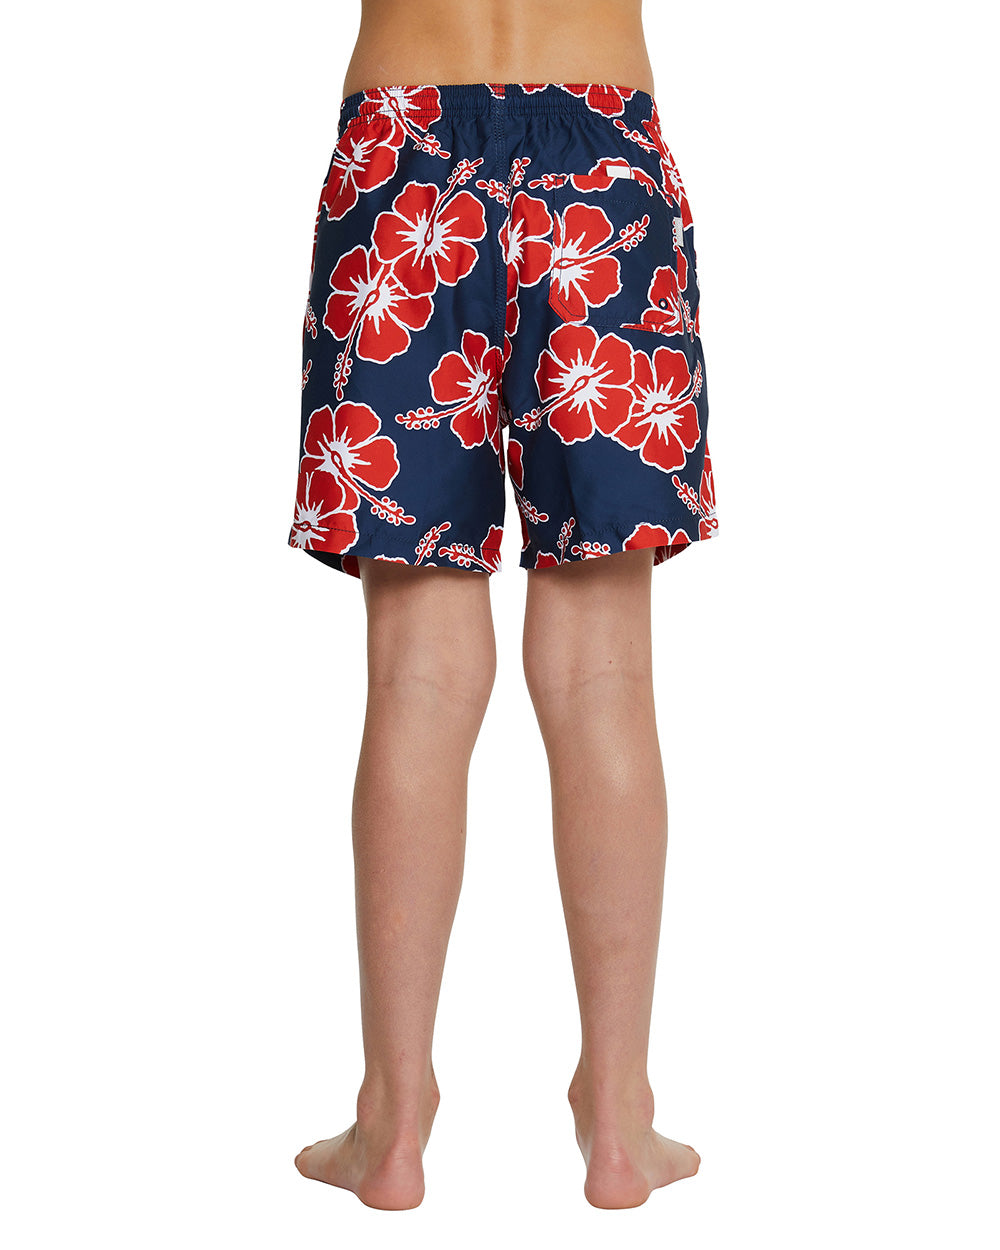 Kids Swim Shorts - Way Back When - Navy - 17""